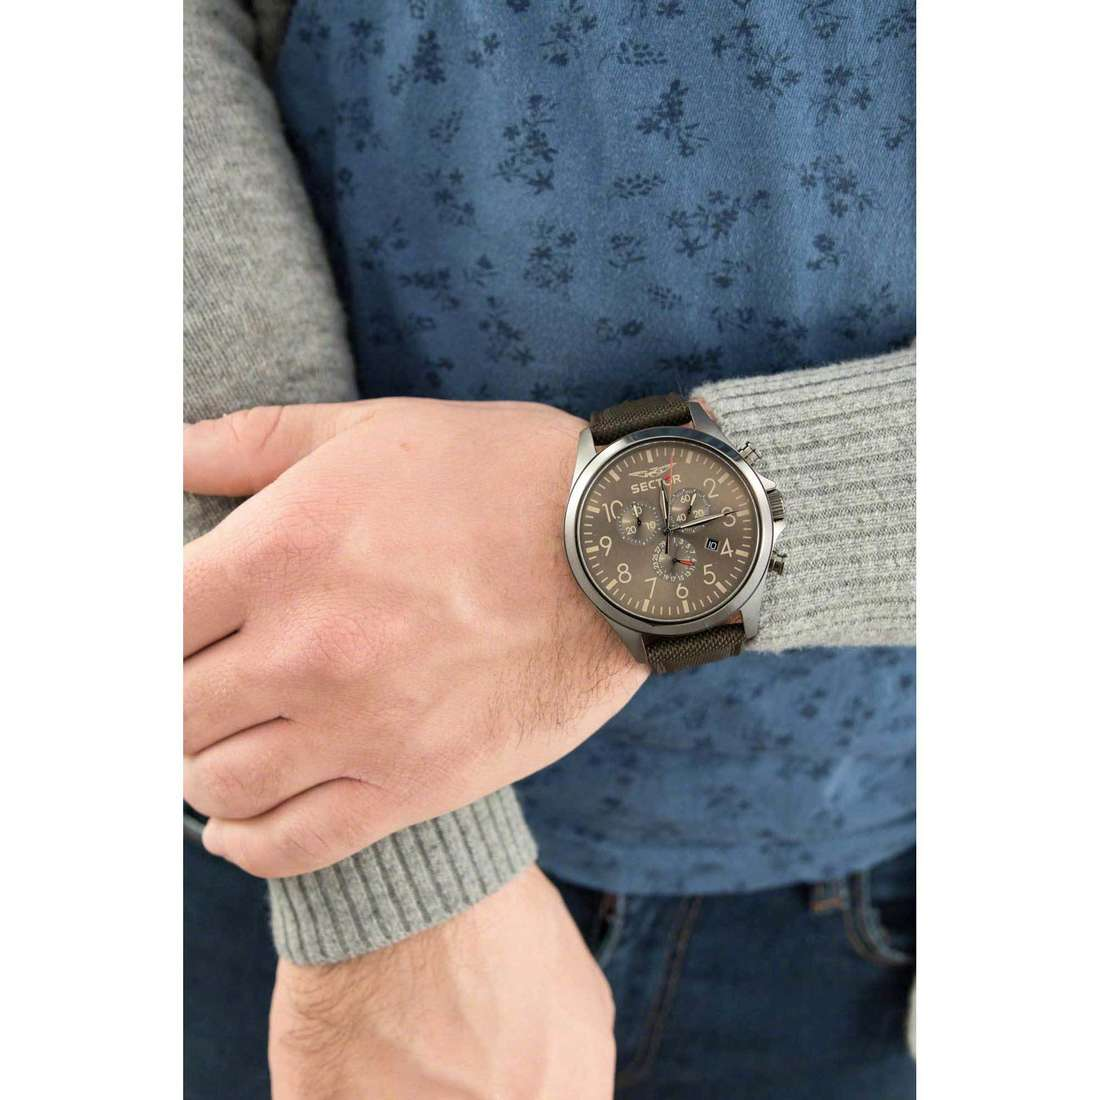 Sector chronographes 180 homme R3271690021 photo wearing